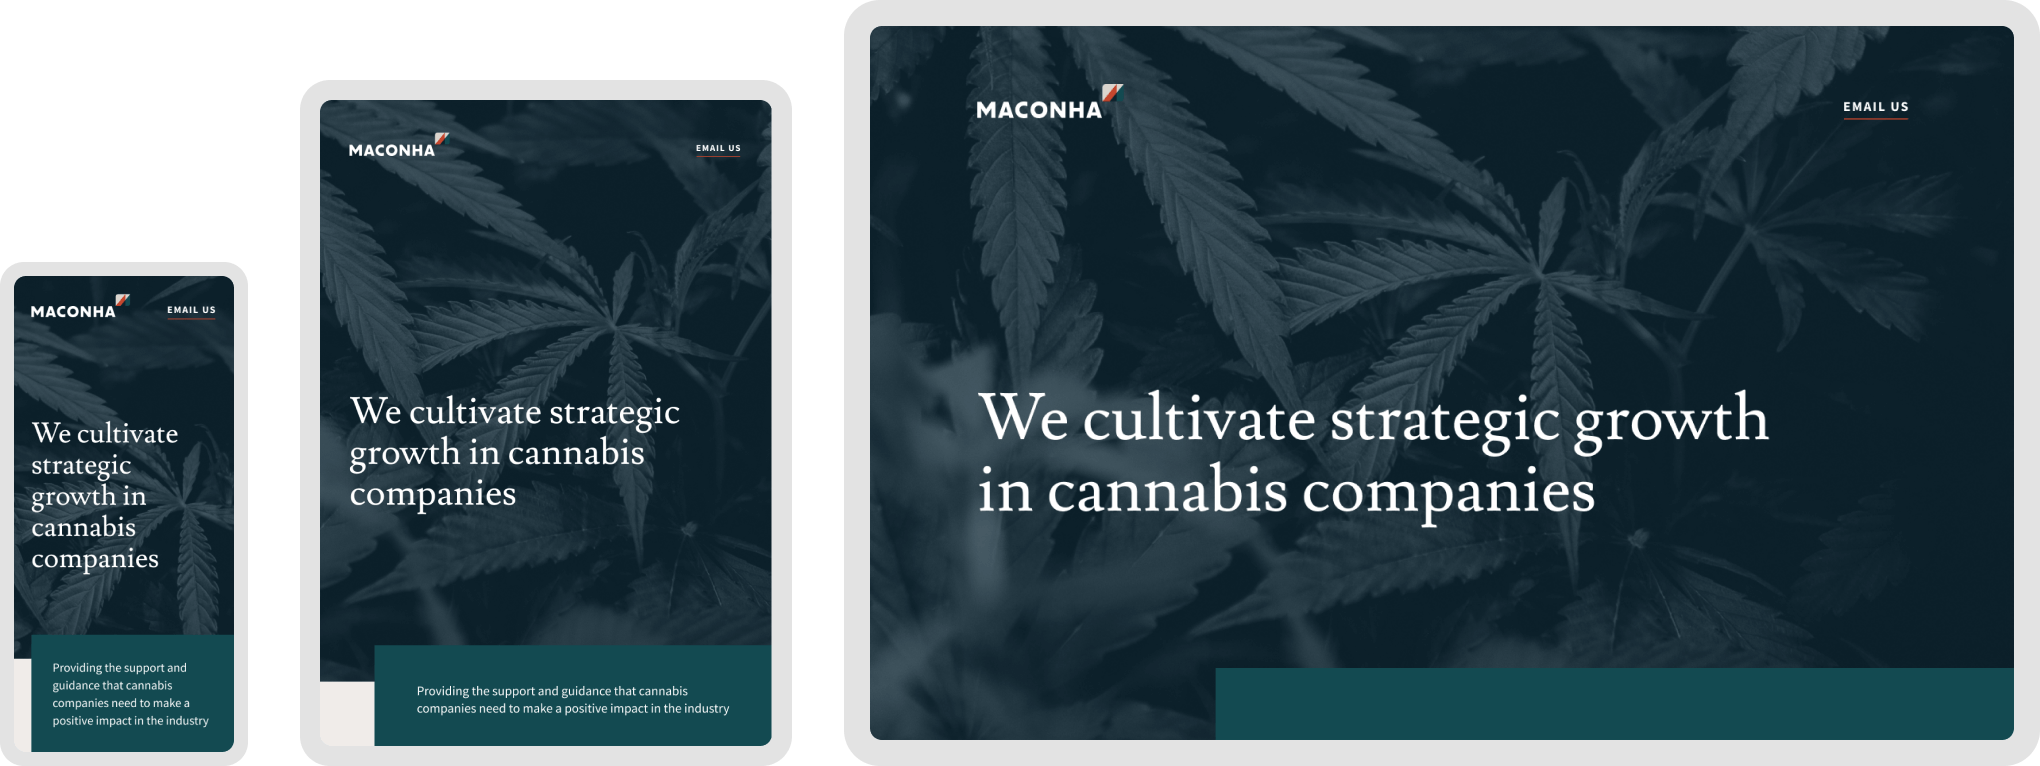 The responsive design for Maconha's website shown across mobile, tablet, and desktop devices.